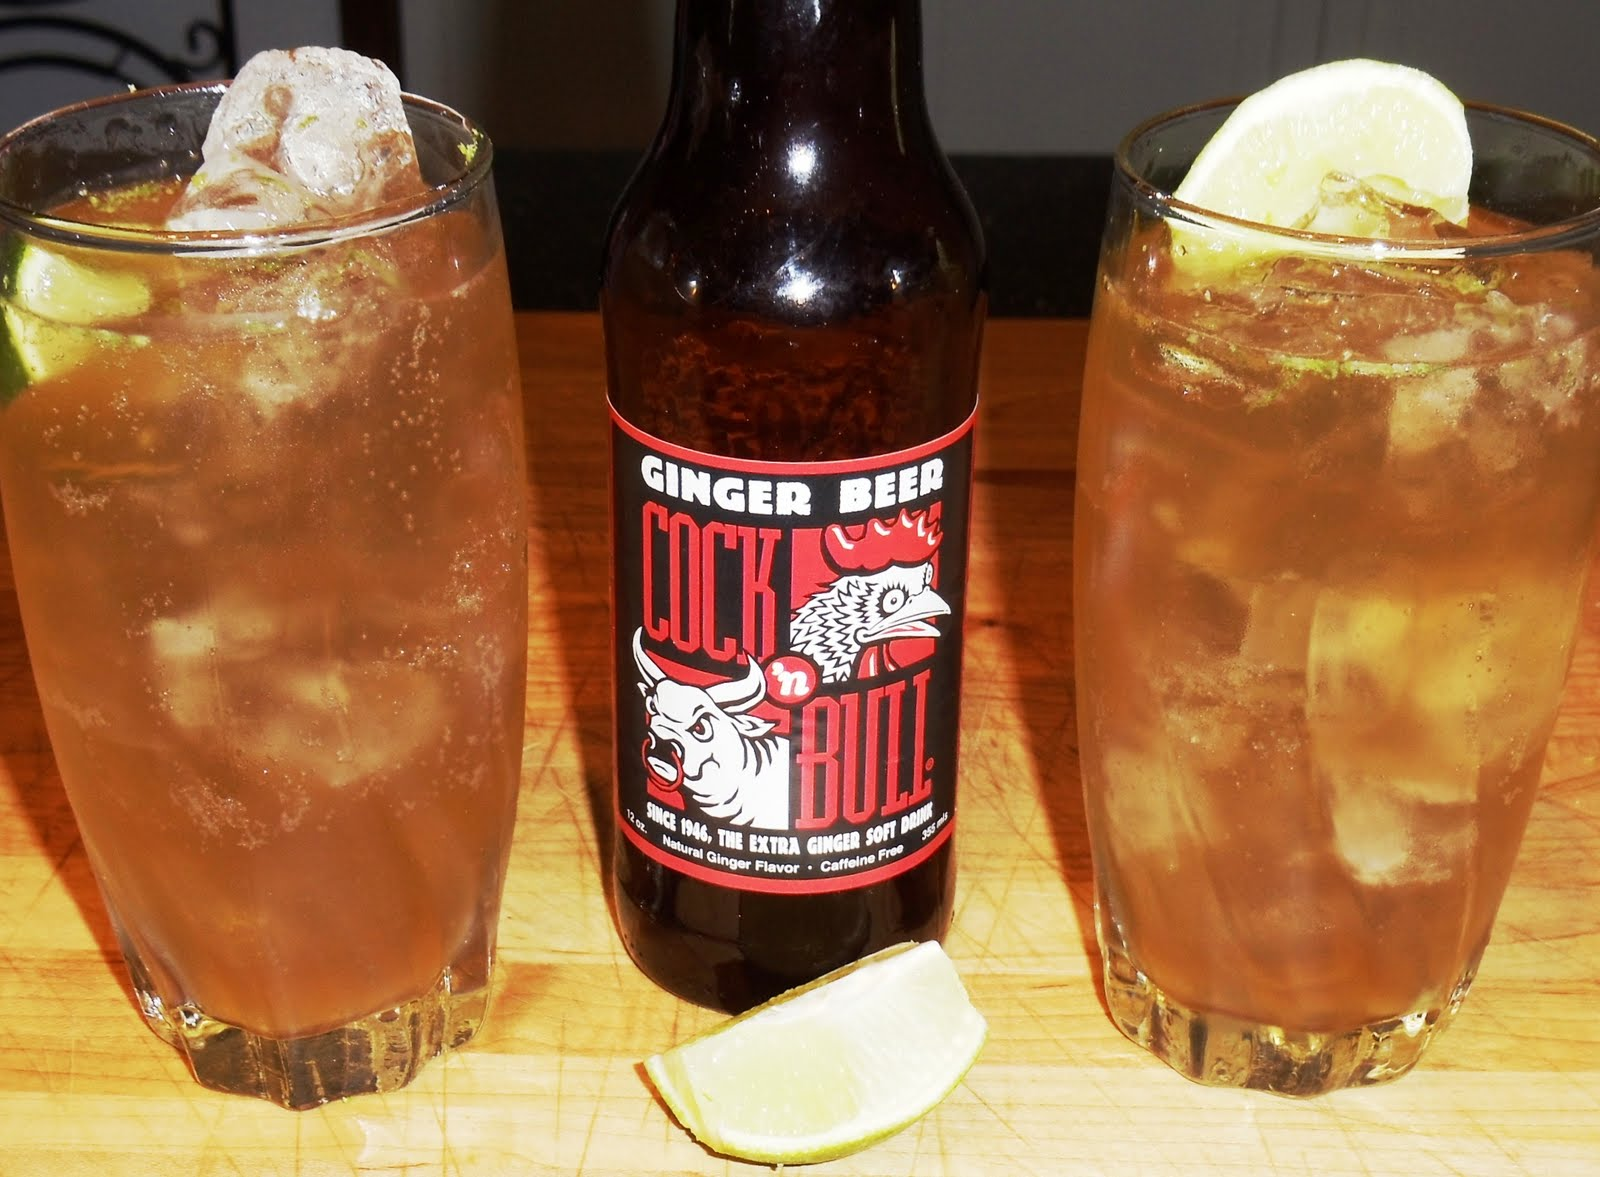 Cock & Bull – ginger beer